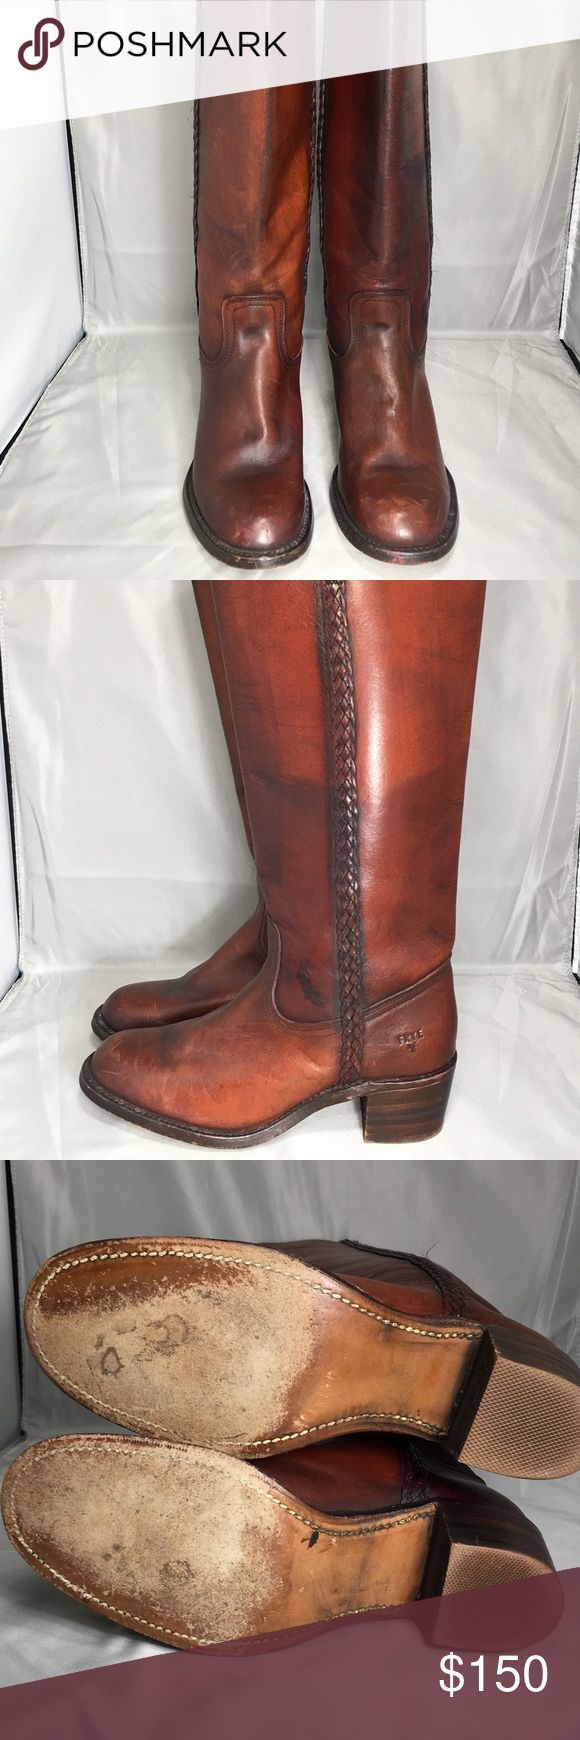 Women's Frye riding boots Great pair of high quality wines Frye riding boots. Overall great pair of boot. Scuff on the toe of the right boot, light wear on soles. Frye Shoes Over the Knee Boots